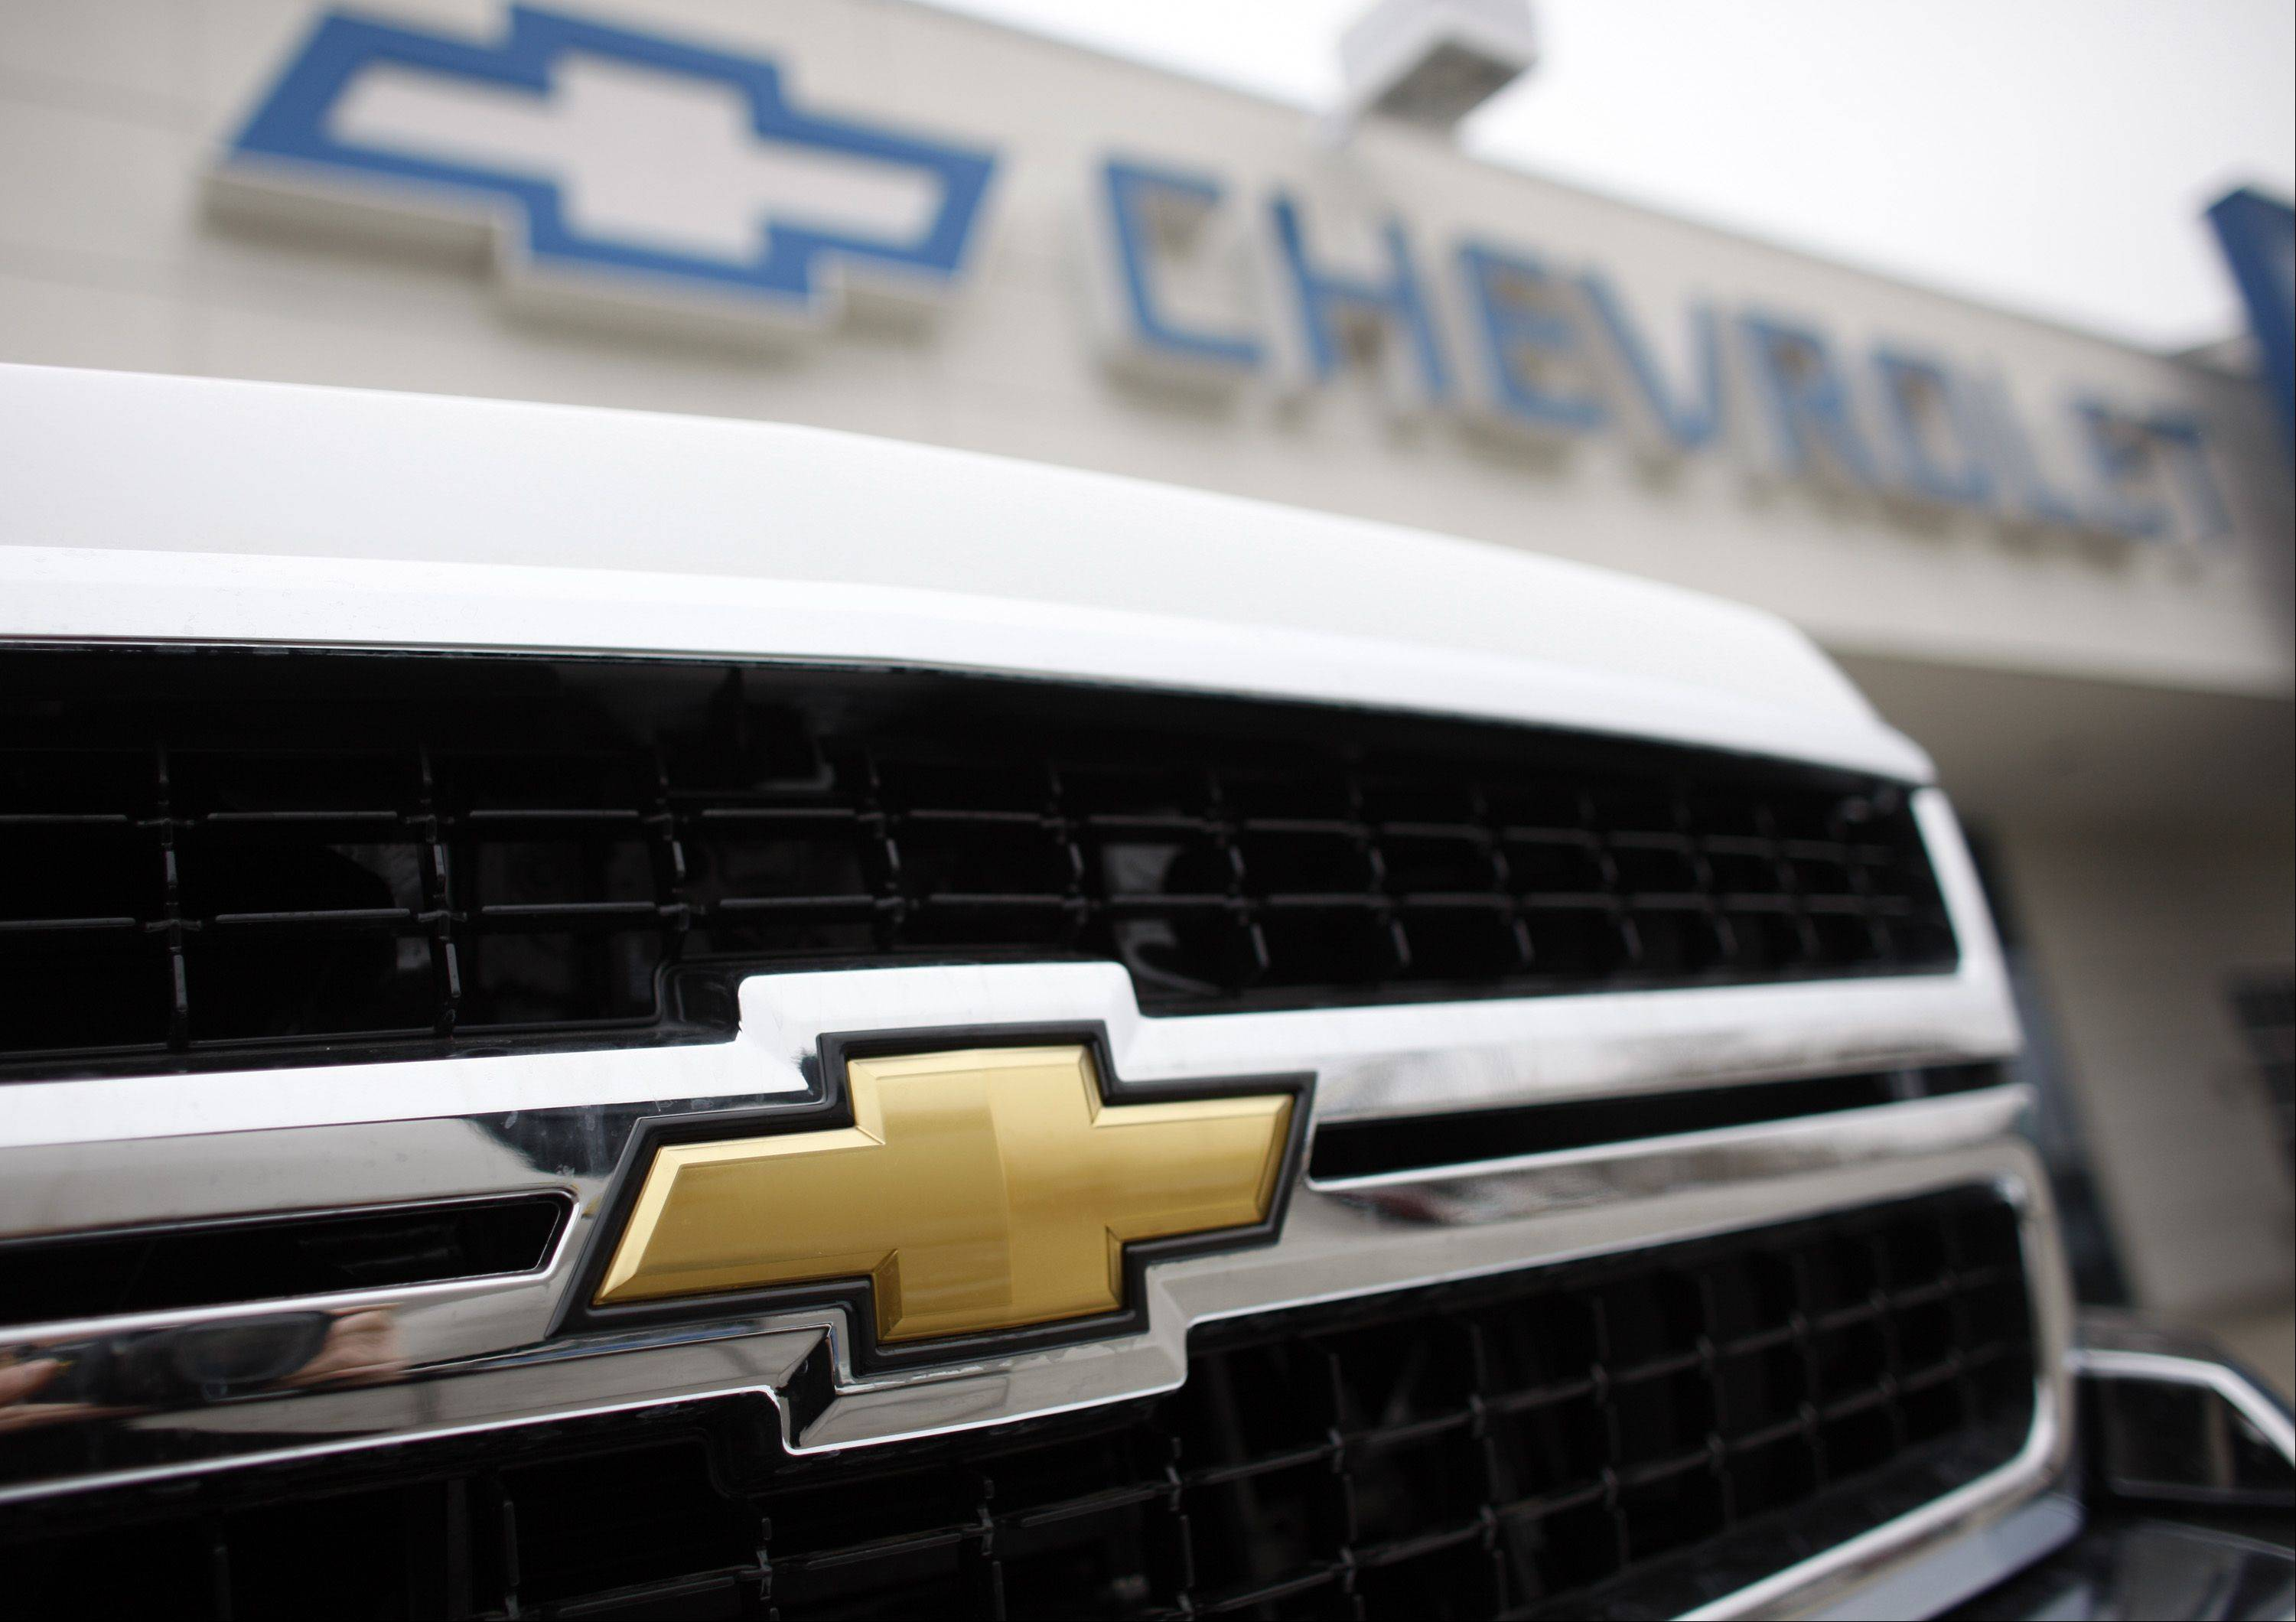 General Motors said November industrywide U.S. light-vehicle sales were the highest in almost five years, exceeding analysts' estimates while Honda Motor Co. led gains as buyers returned to showrooms after Hurricane Sandy.